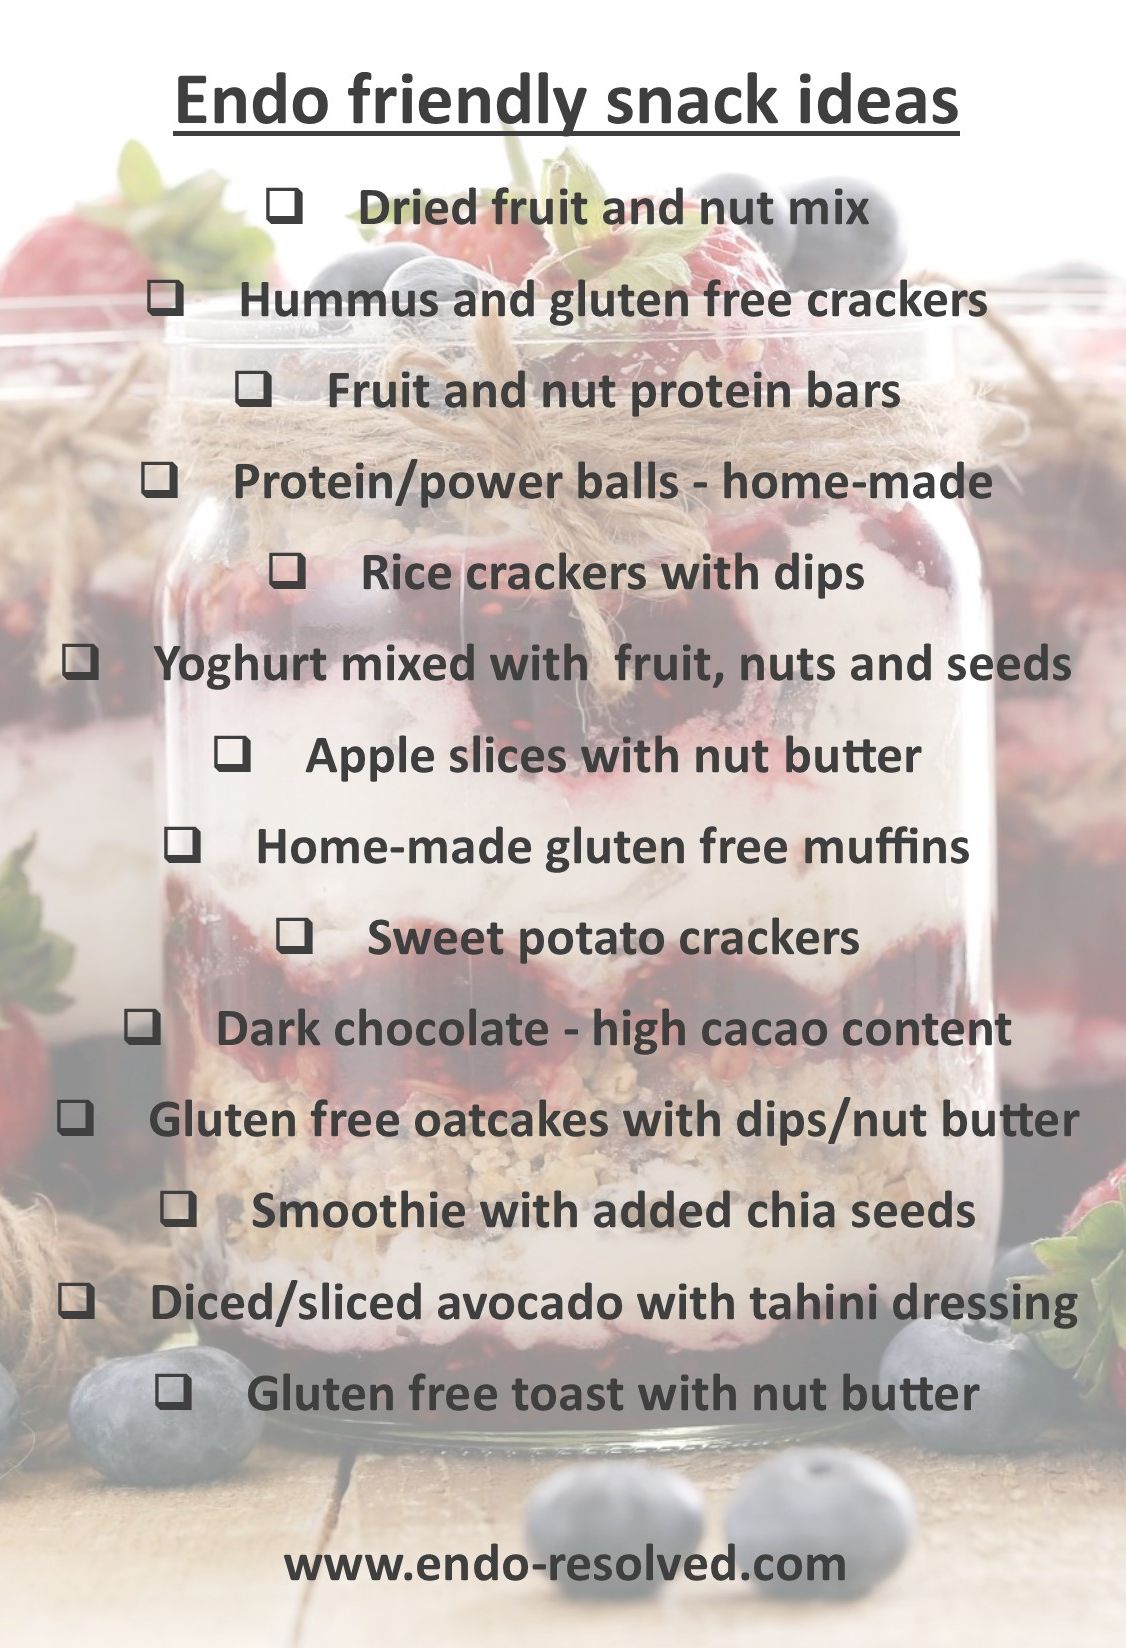 Endometriosis diet snack ideas